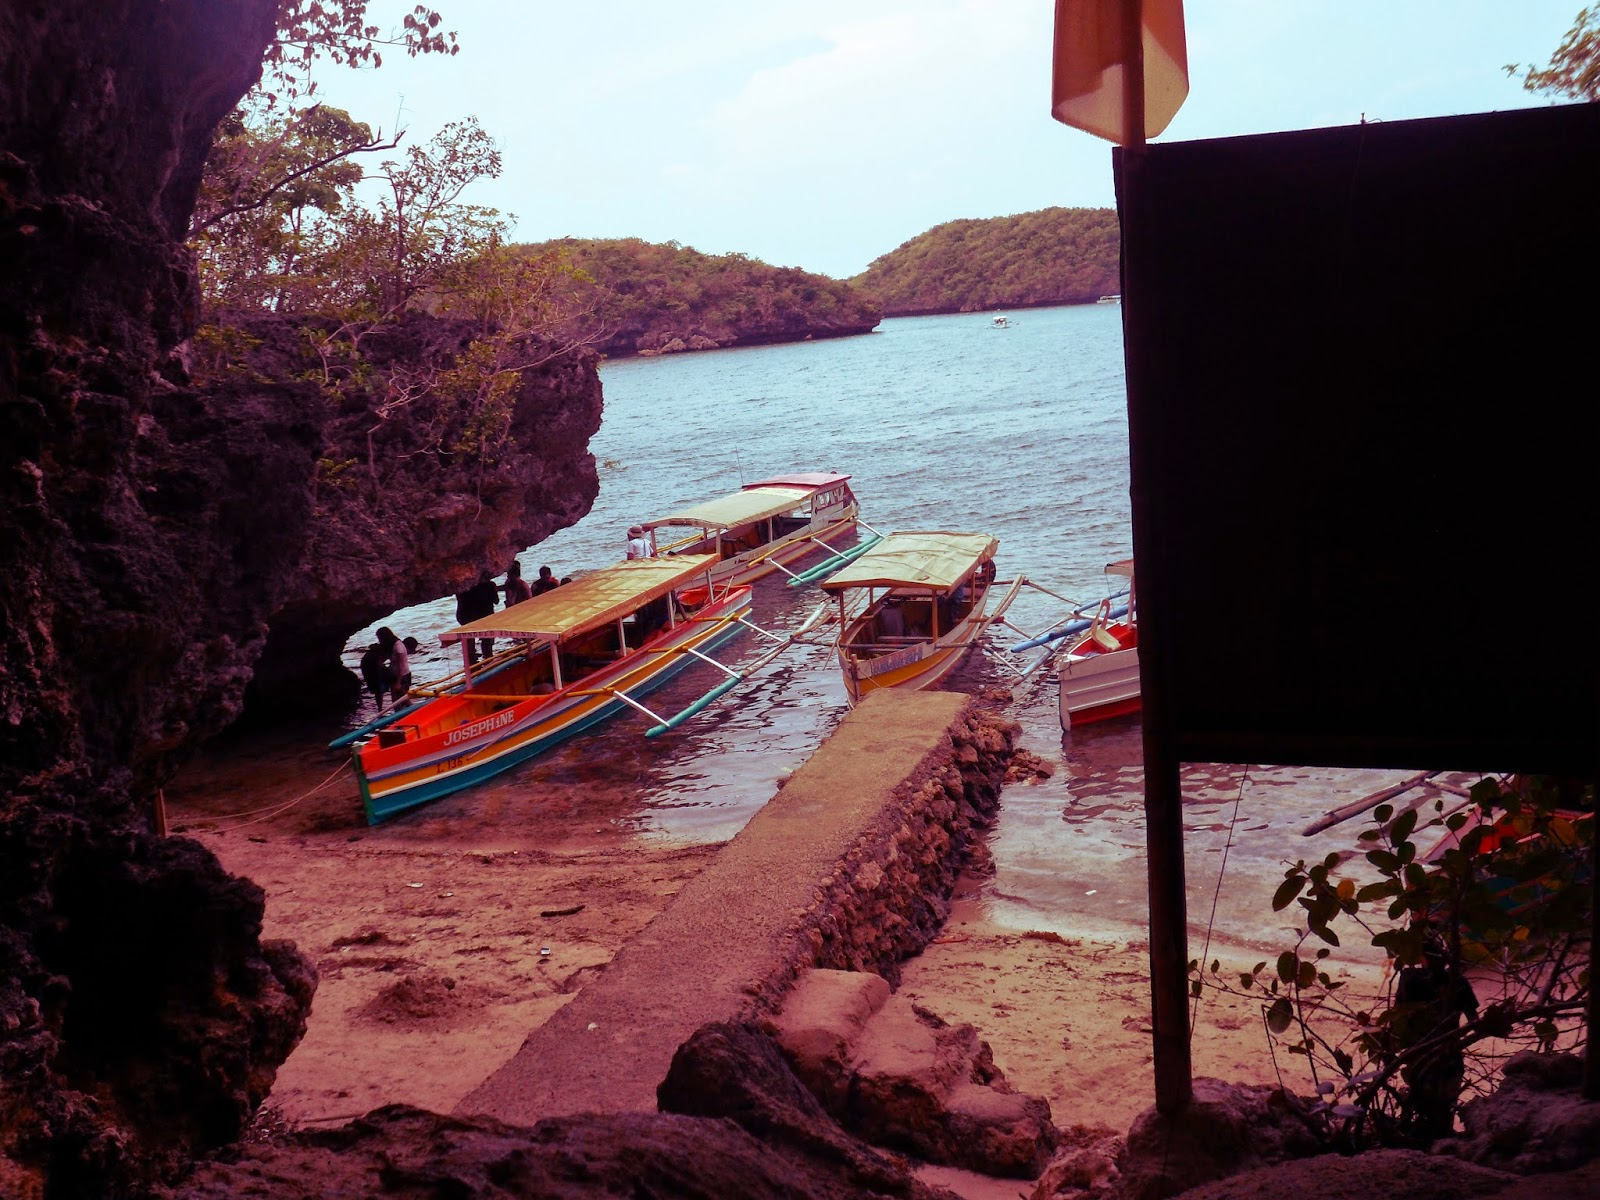 Cuenco Island at Hundred Islands